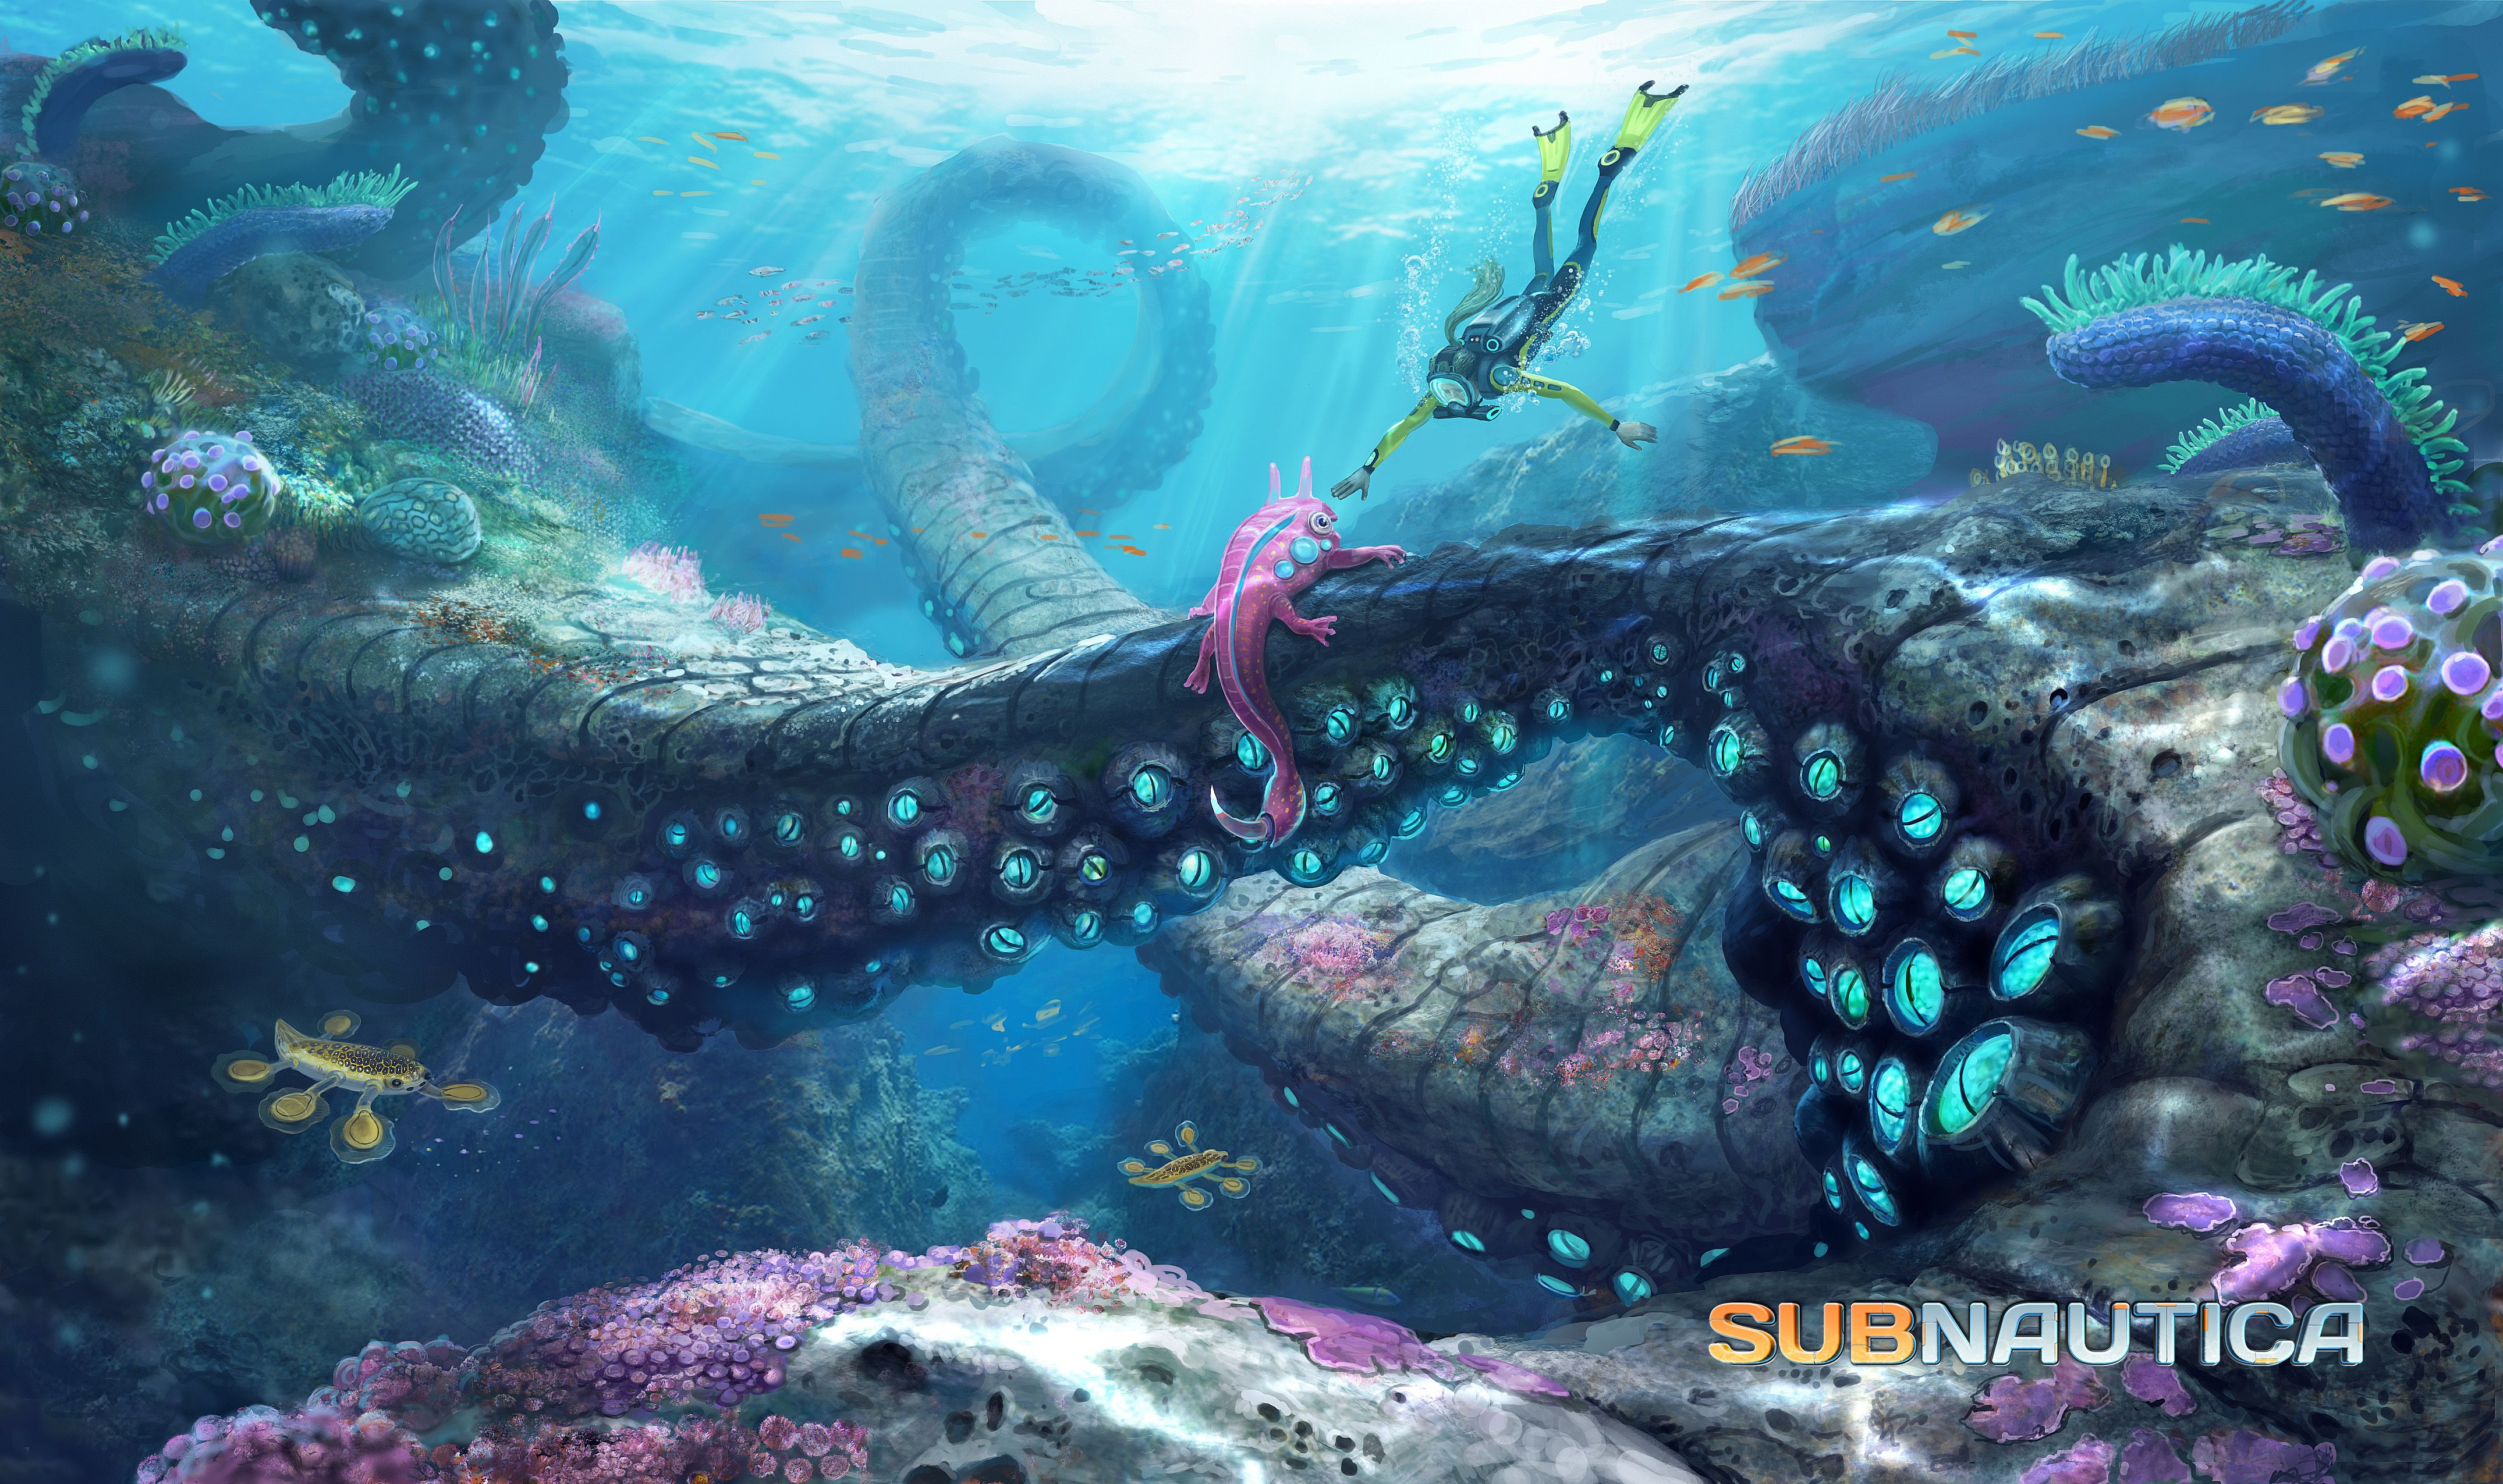 46 Subnautica HD Wallpapers